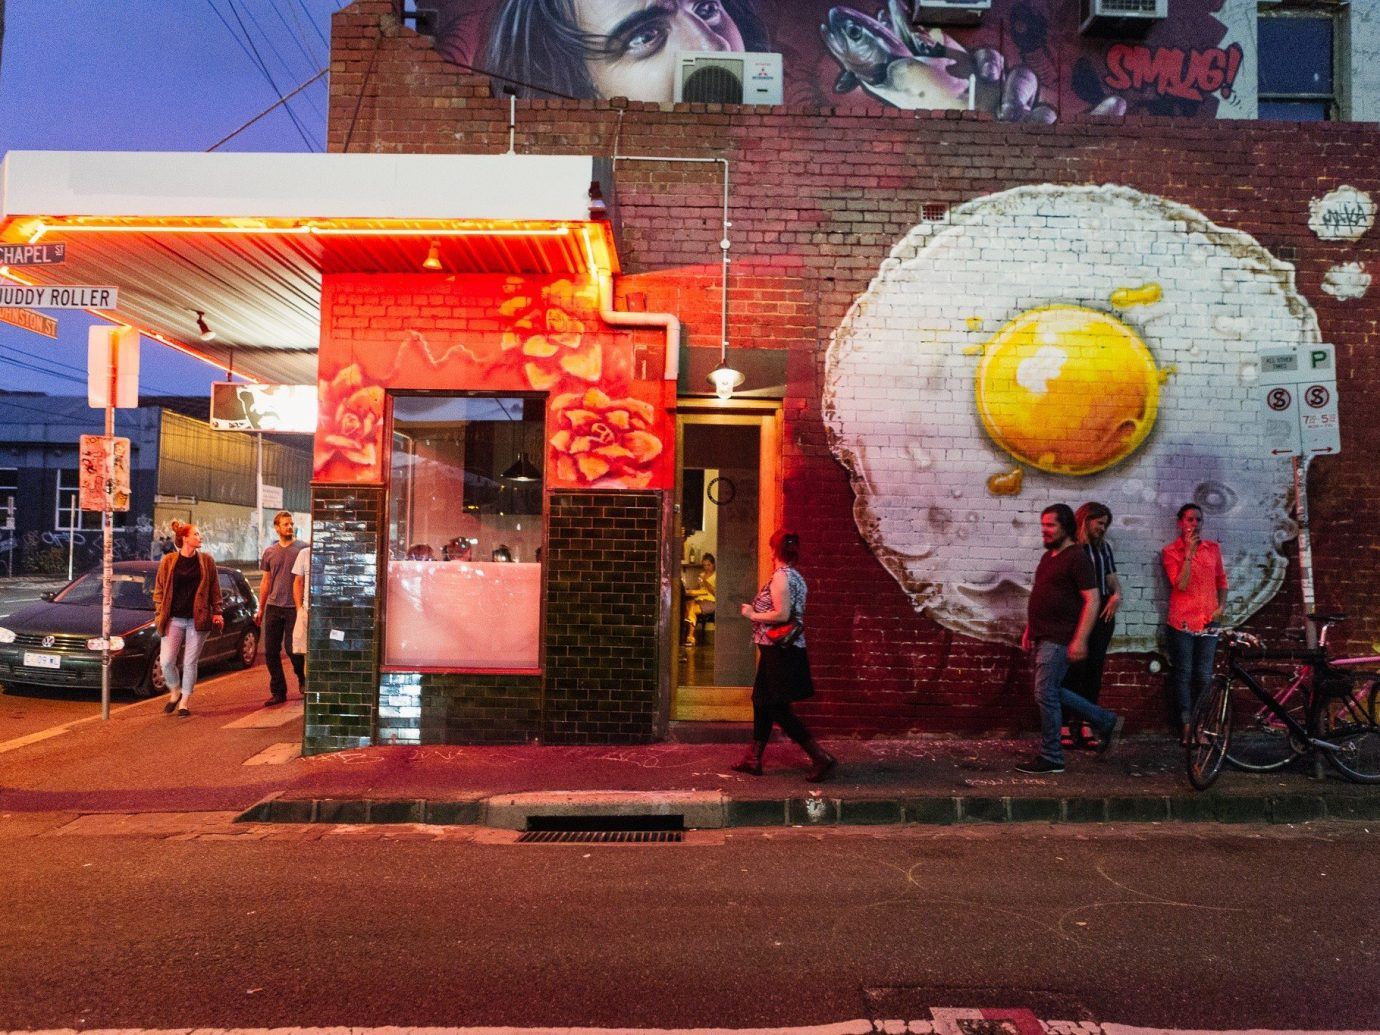 Day Trips Trip Ideas building outdoor color red road urban area street restaurant